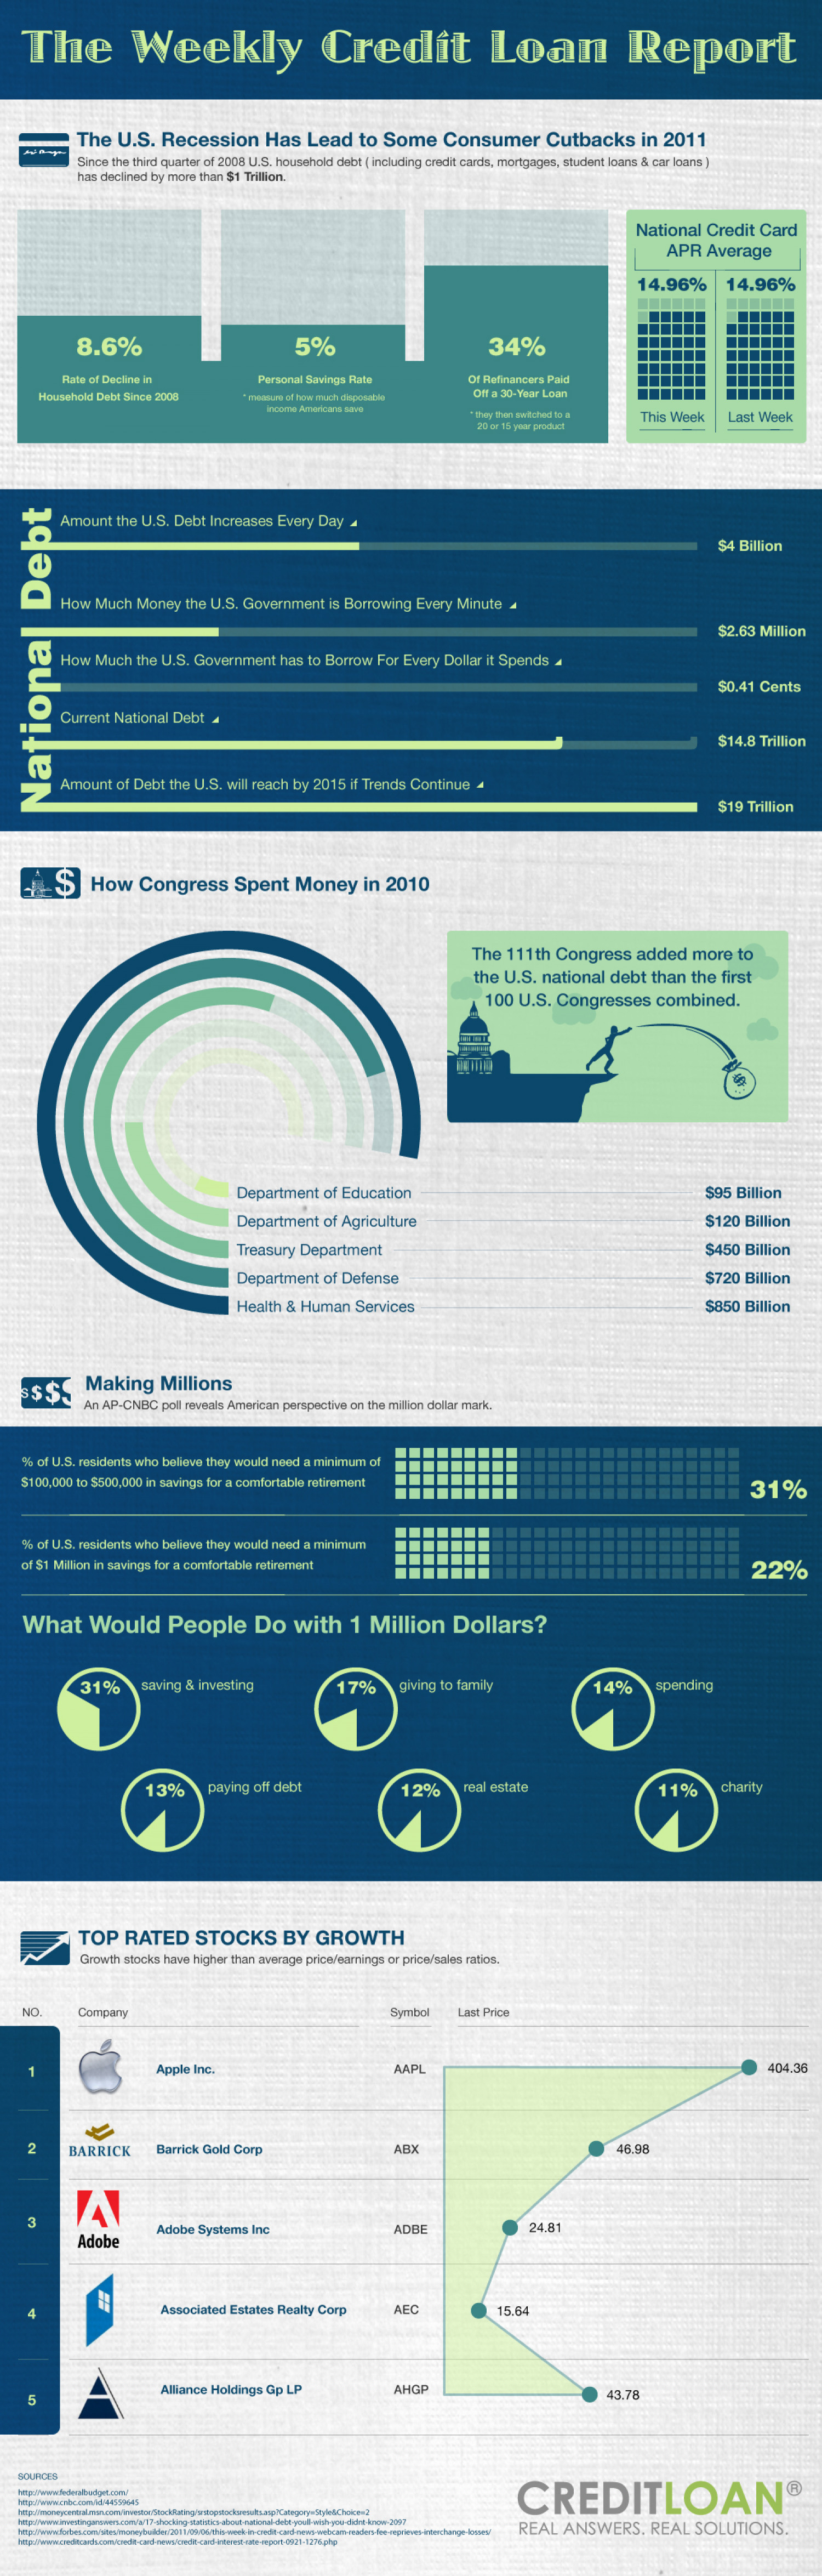 The Weekly Credit Loan Report Infographic